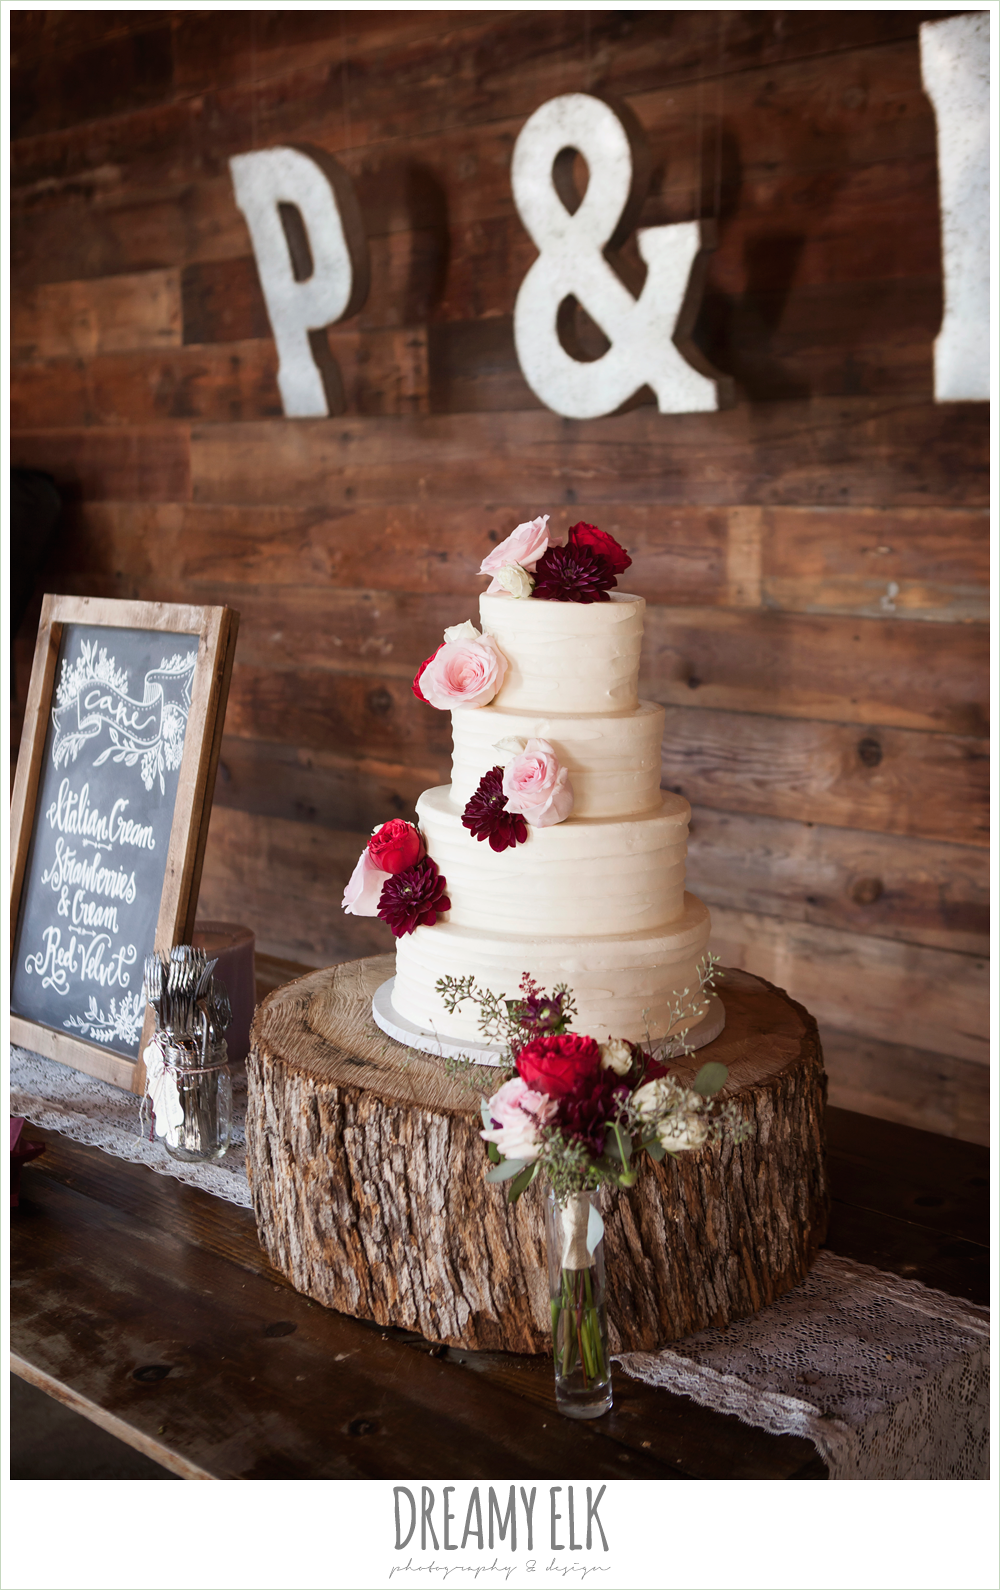 Michelle's Patisserie, four tier white wedding cake, flowers on cake, the union on 8th wedding photo {dreamy elk photography and design}